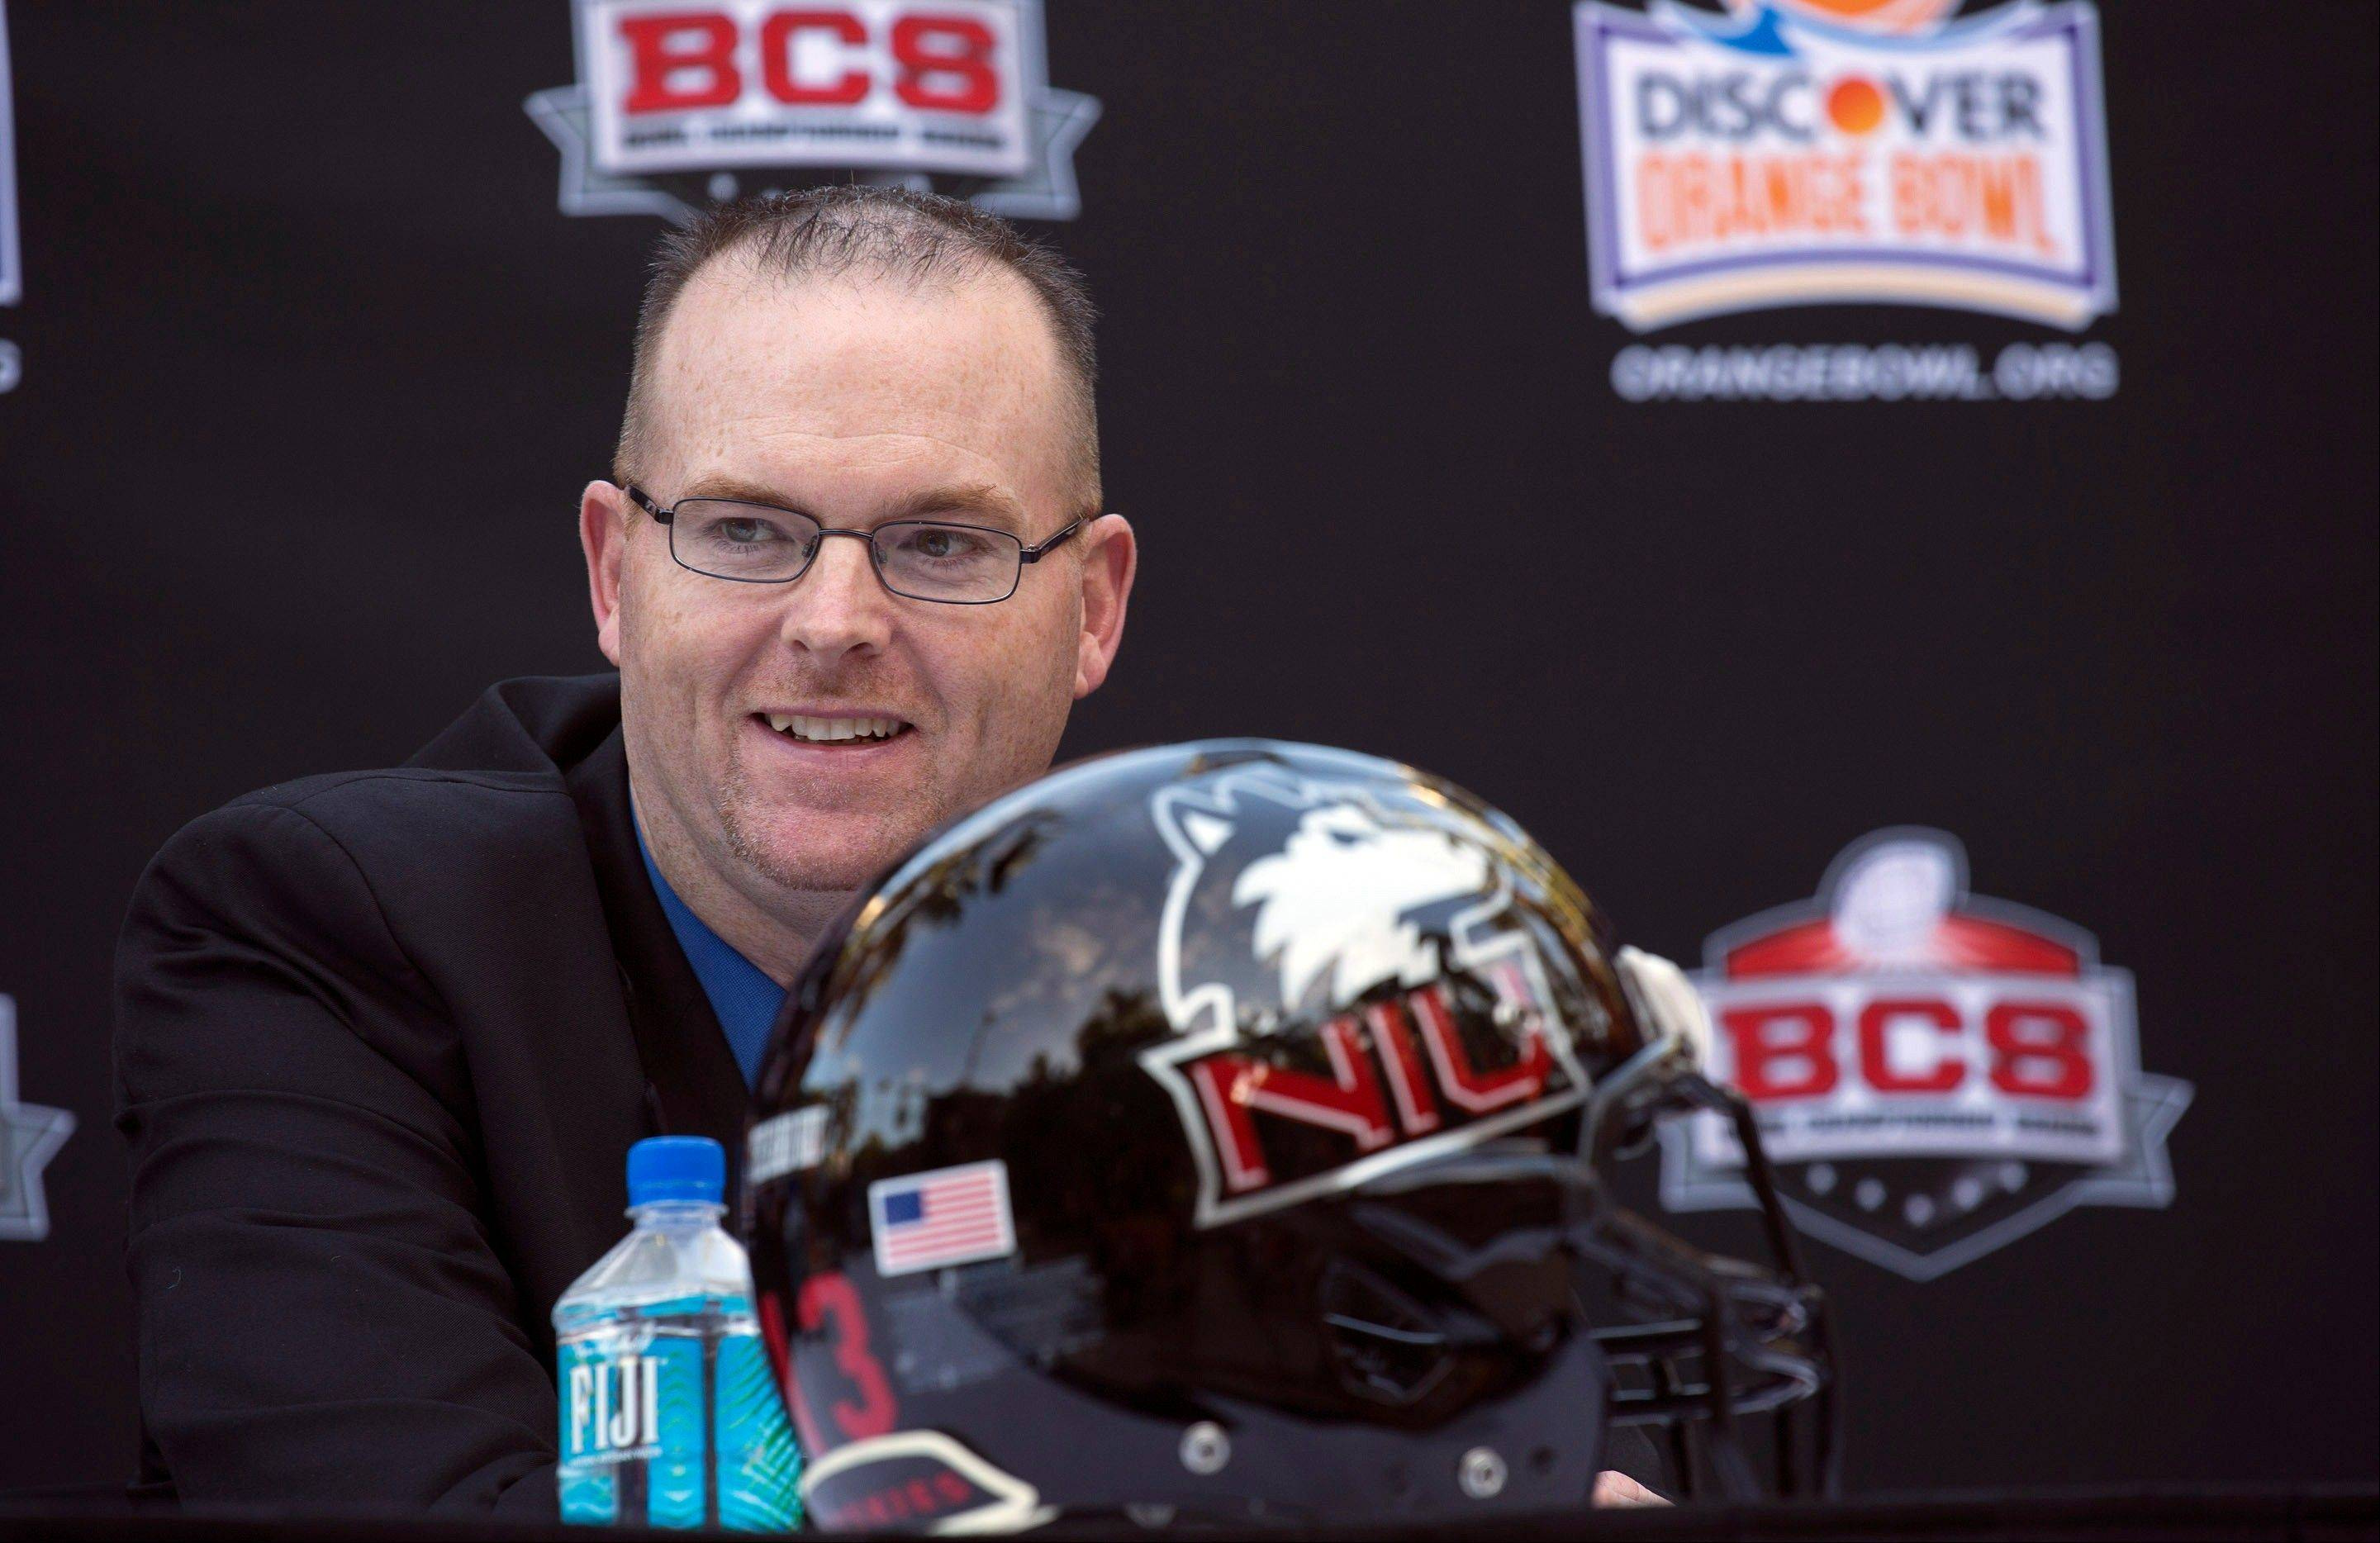 Northern Illinois coach Rod Carey talks to the media during an NCAA college football Orange Bowl press conference Wednesday, Dec. 5, 2012, in Hollywood, Fla. Northern Illinois takes on Florida State on Jan. 1, 2013 in Miami. Northern Illinois has promoted Carey from offensive coordinator afterDave Doeren left for North Carolina State.